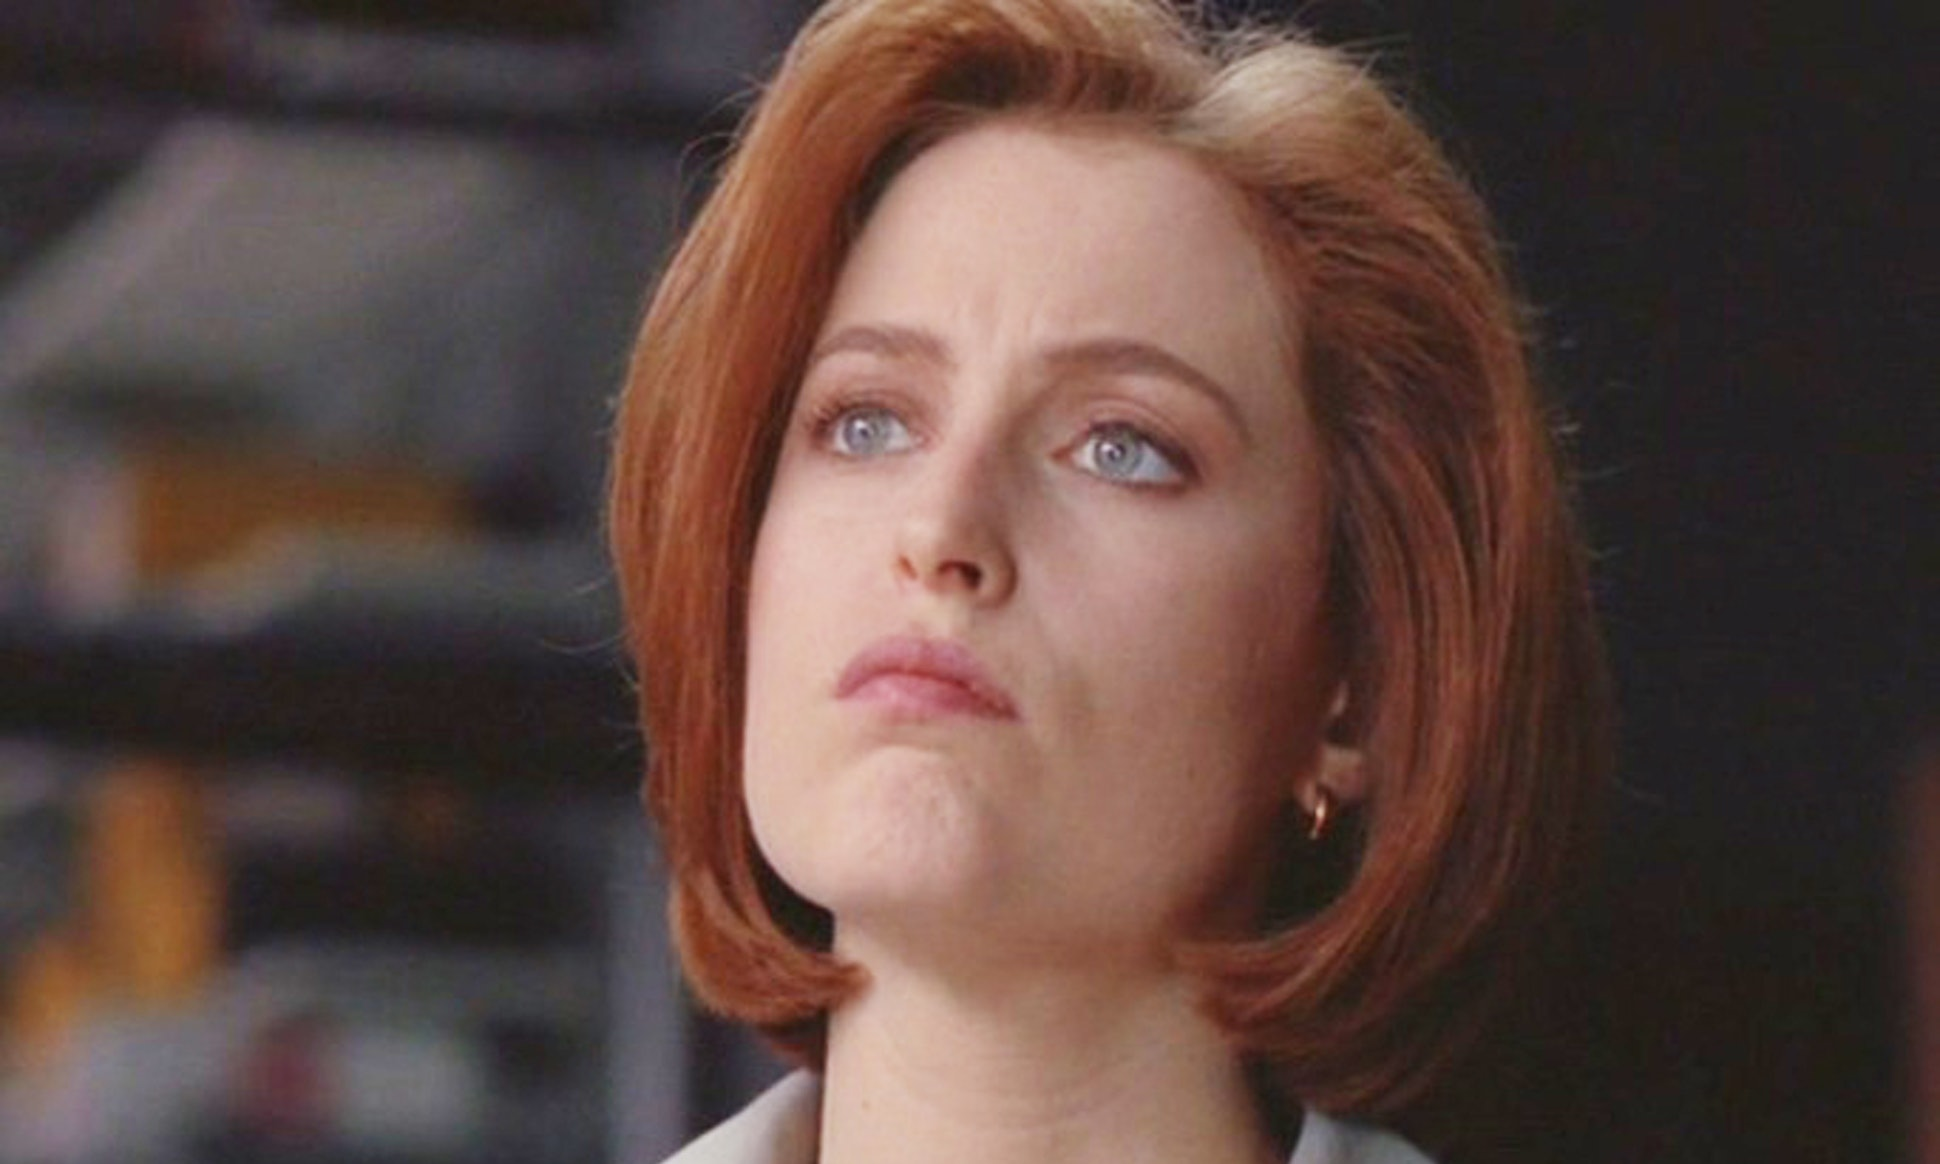 Scully, a woman in STEM in pop culture